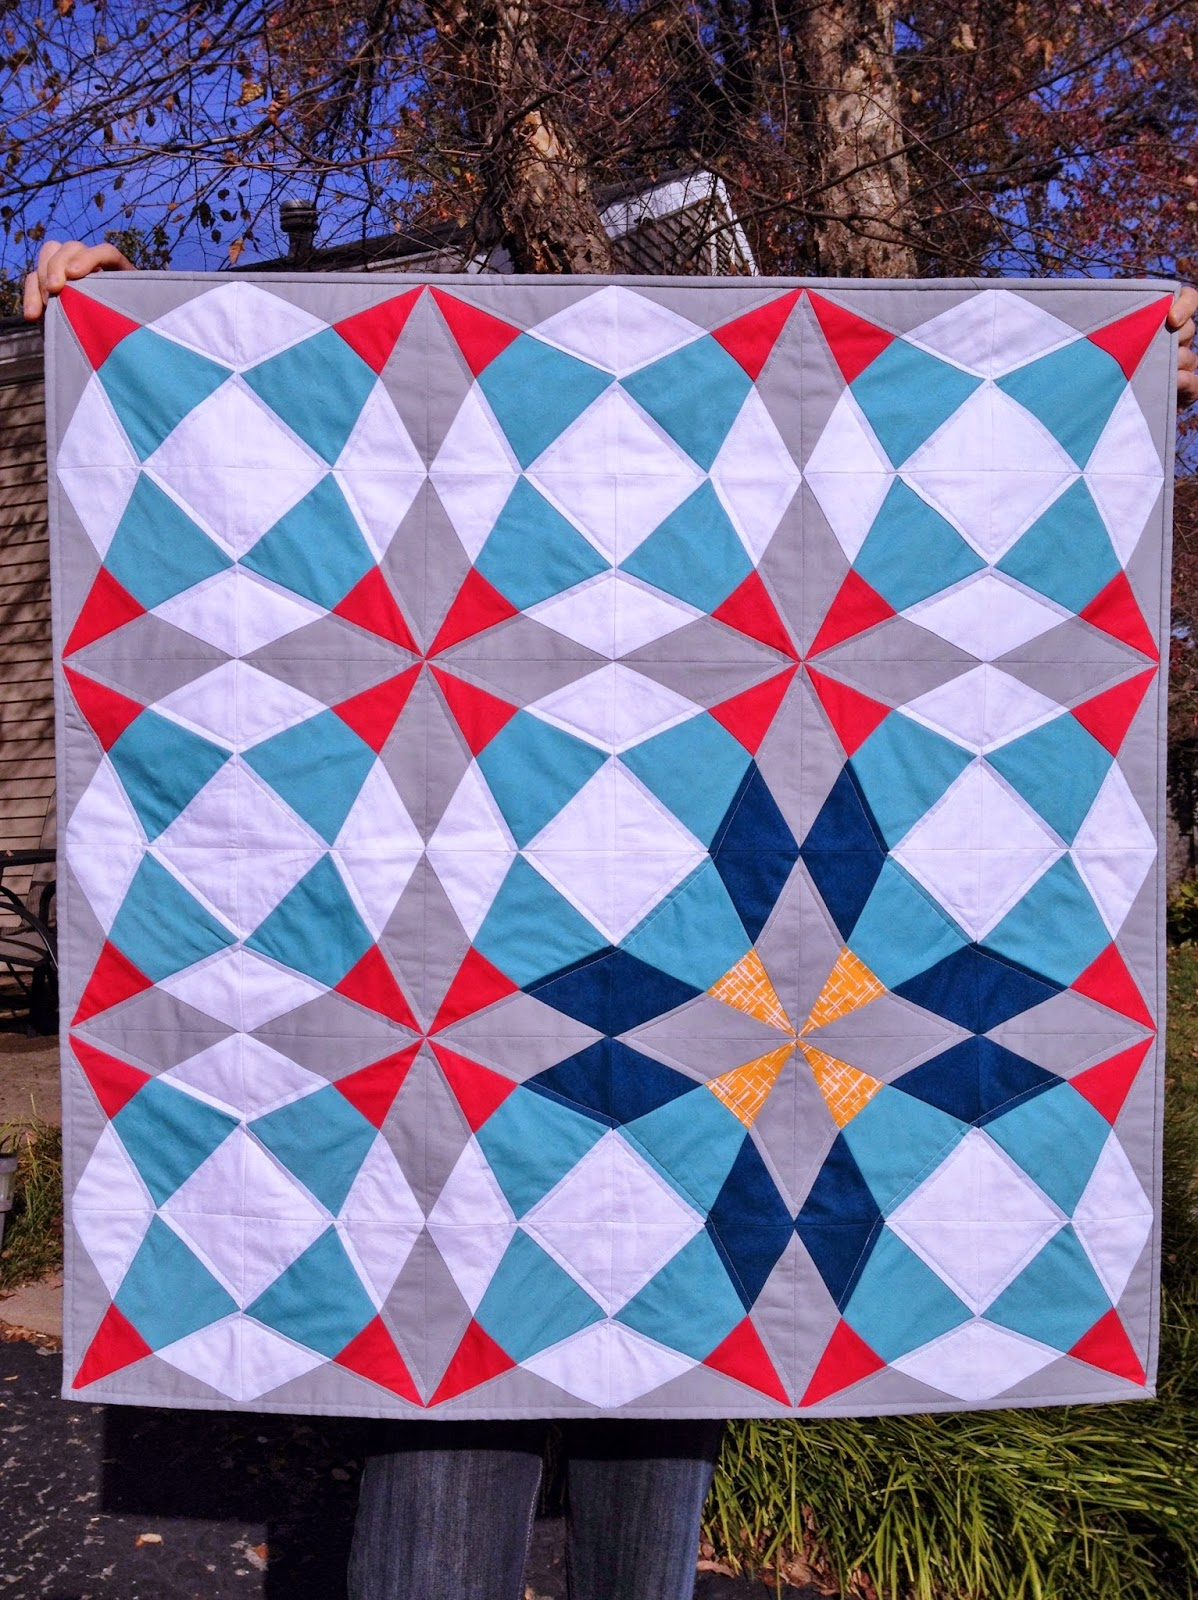 http://ablueskykindoflife.blogspot.com/2014/11/cut-glass-baby-quilt-finish.html